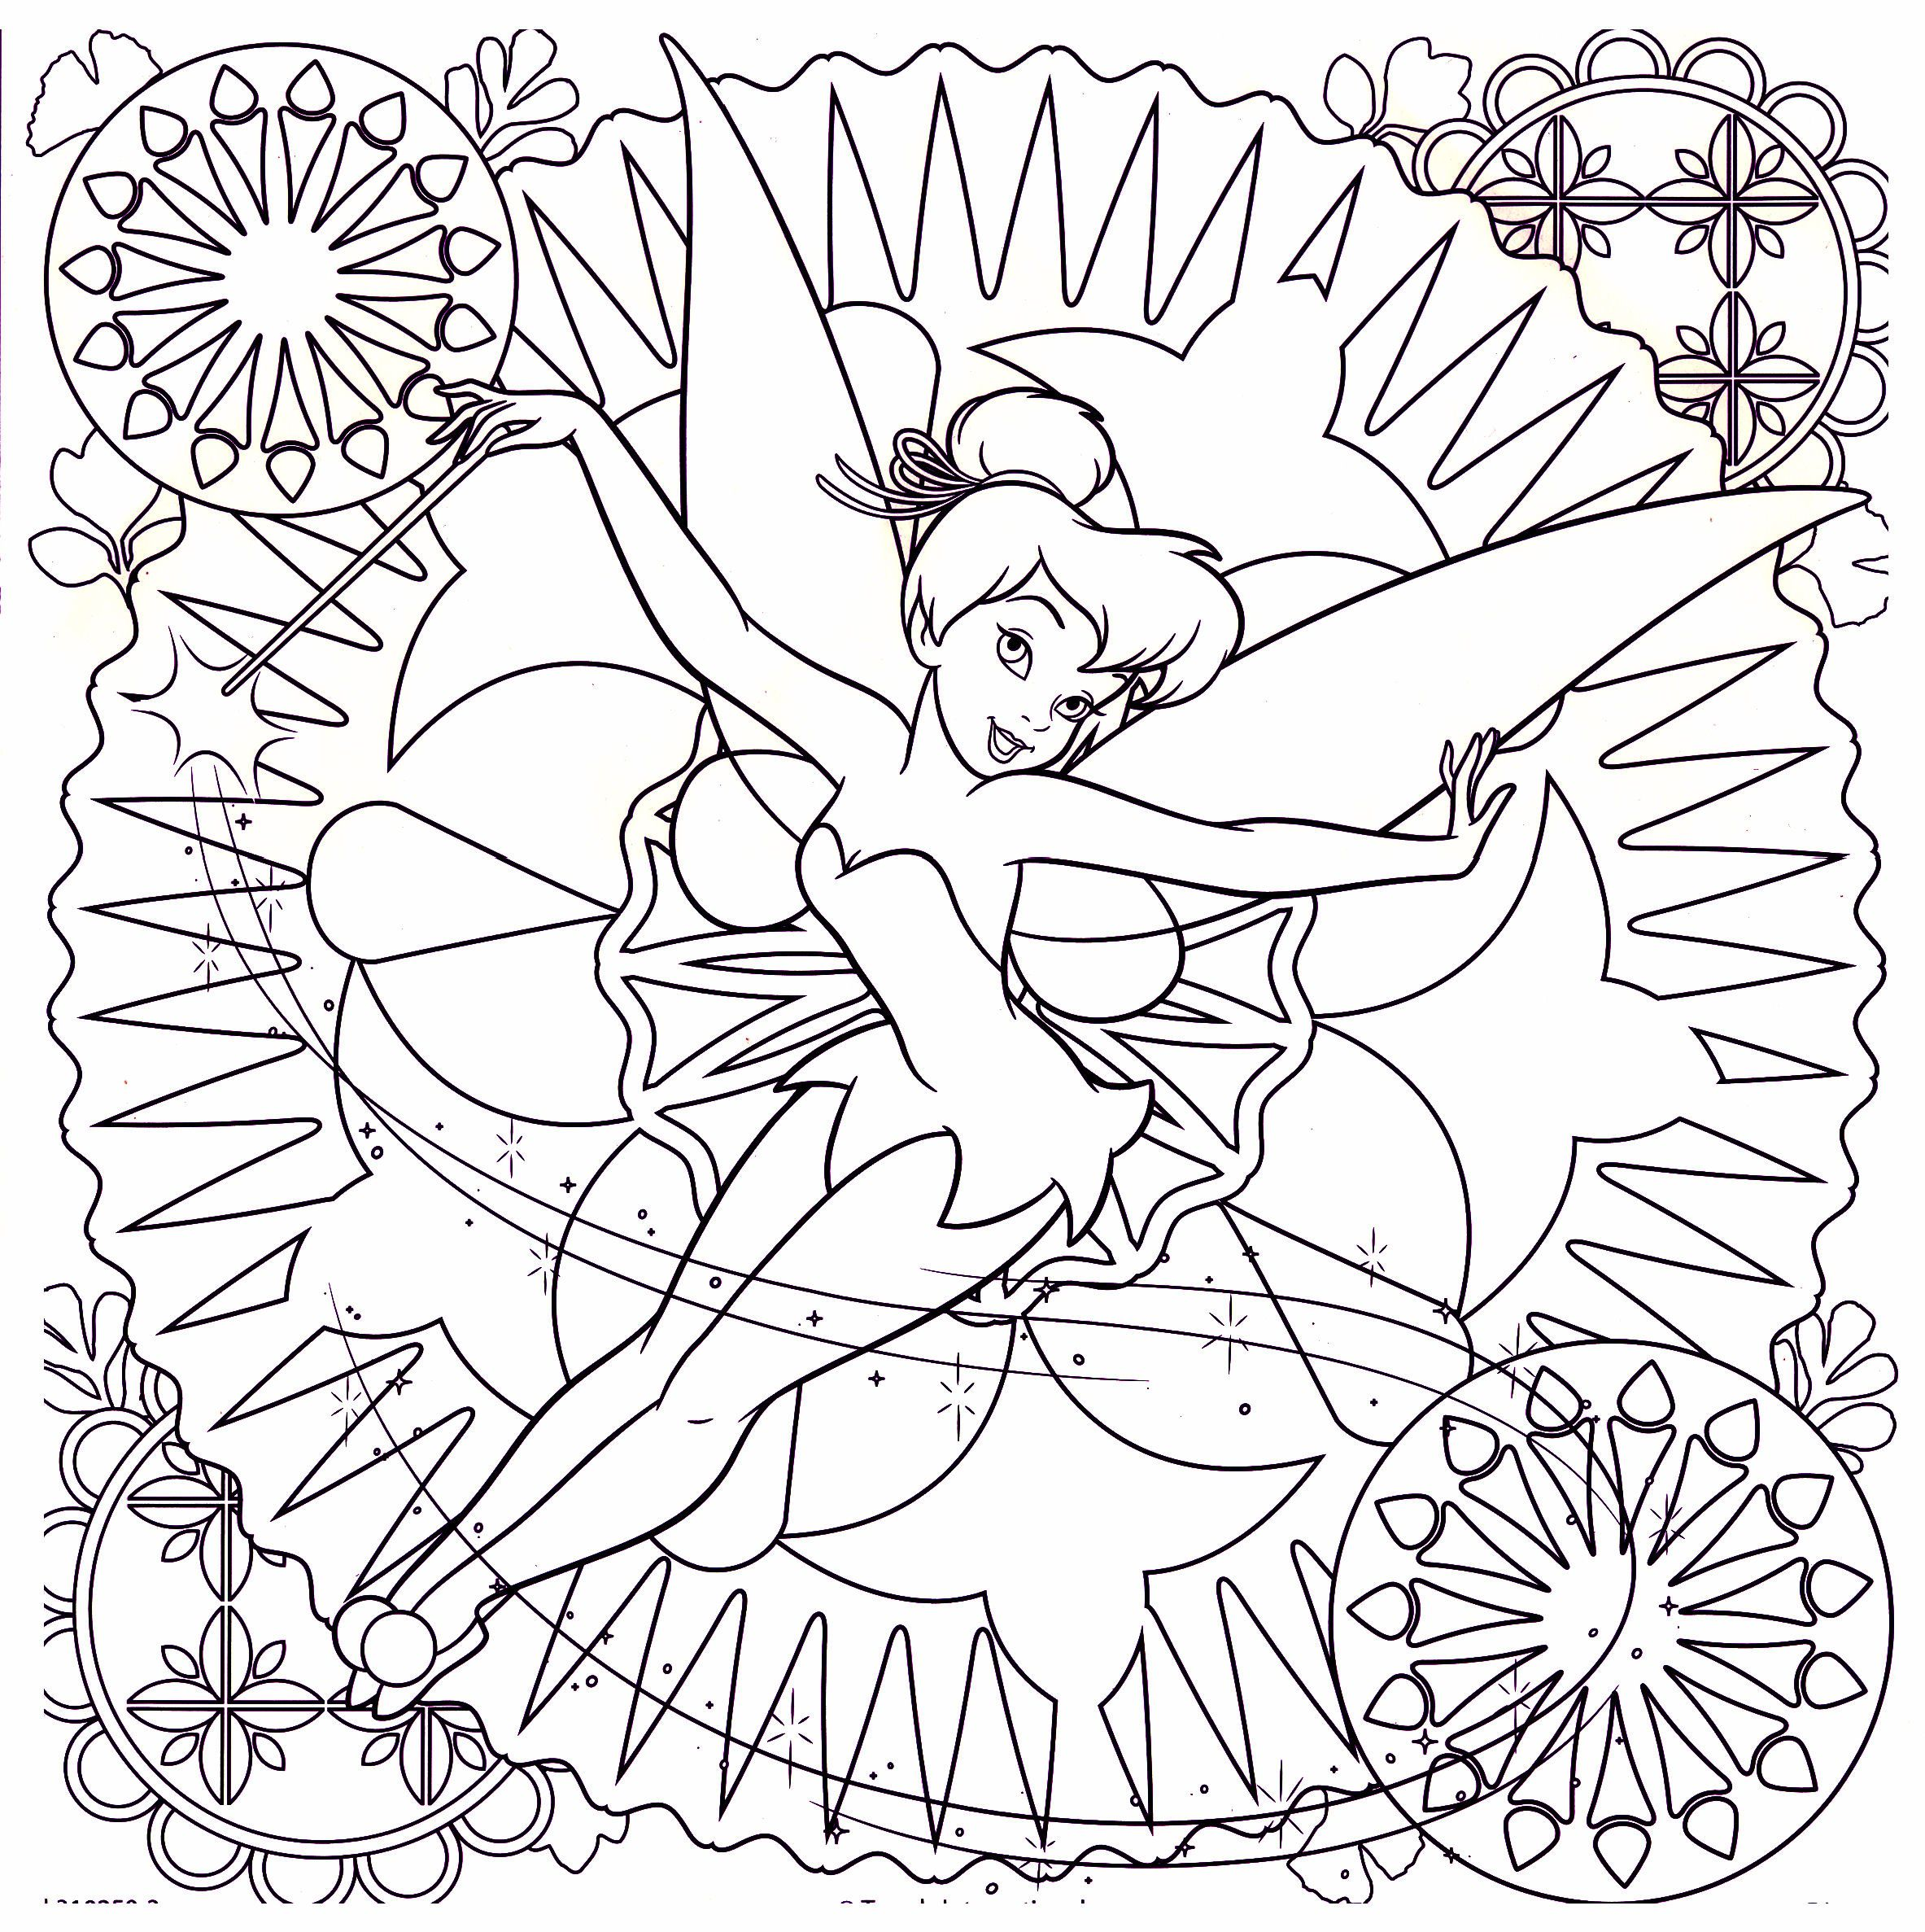 Tinkerbell Difficult Coloring Page | Malvorlagen | Pinterest ...